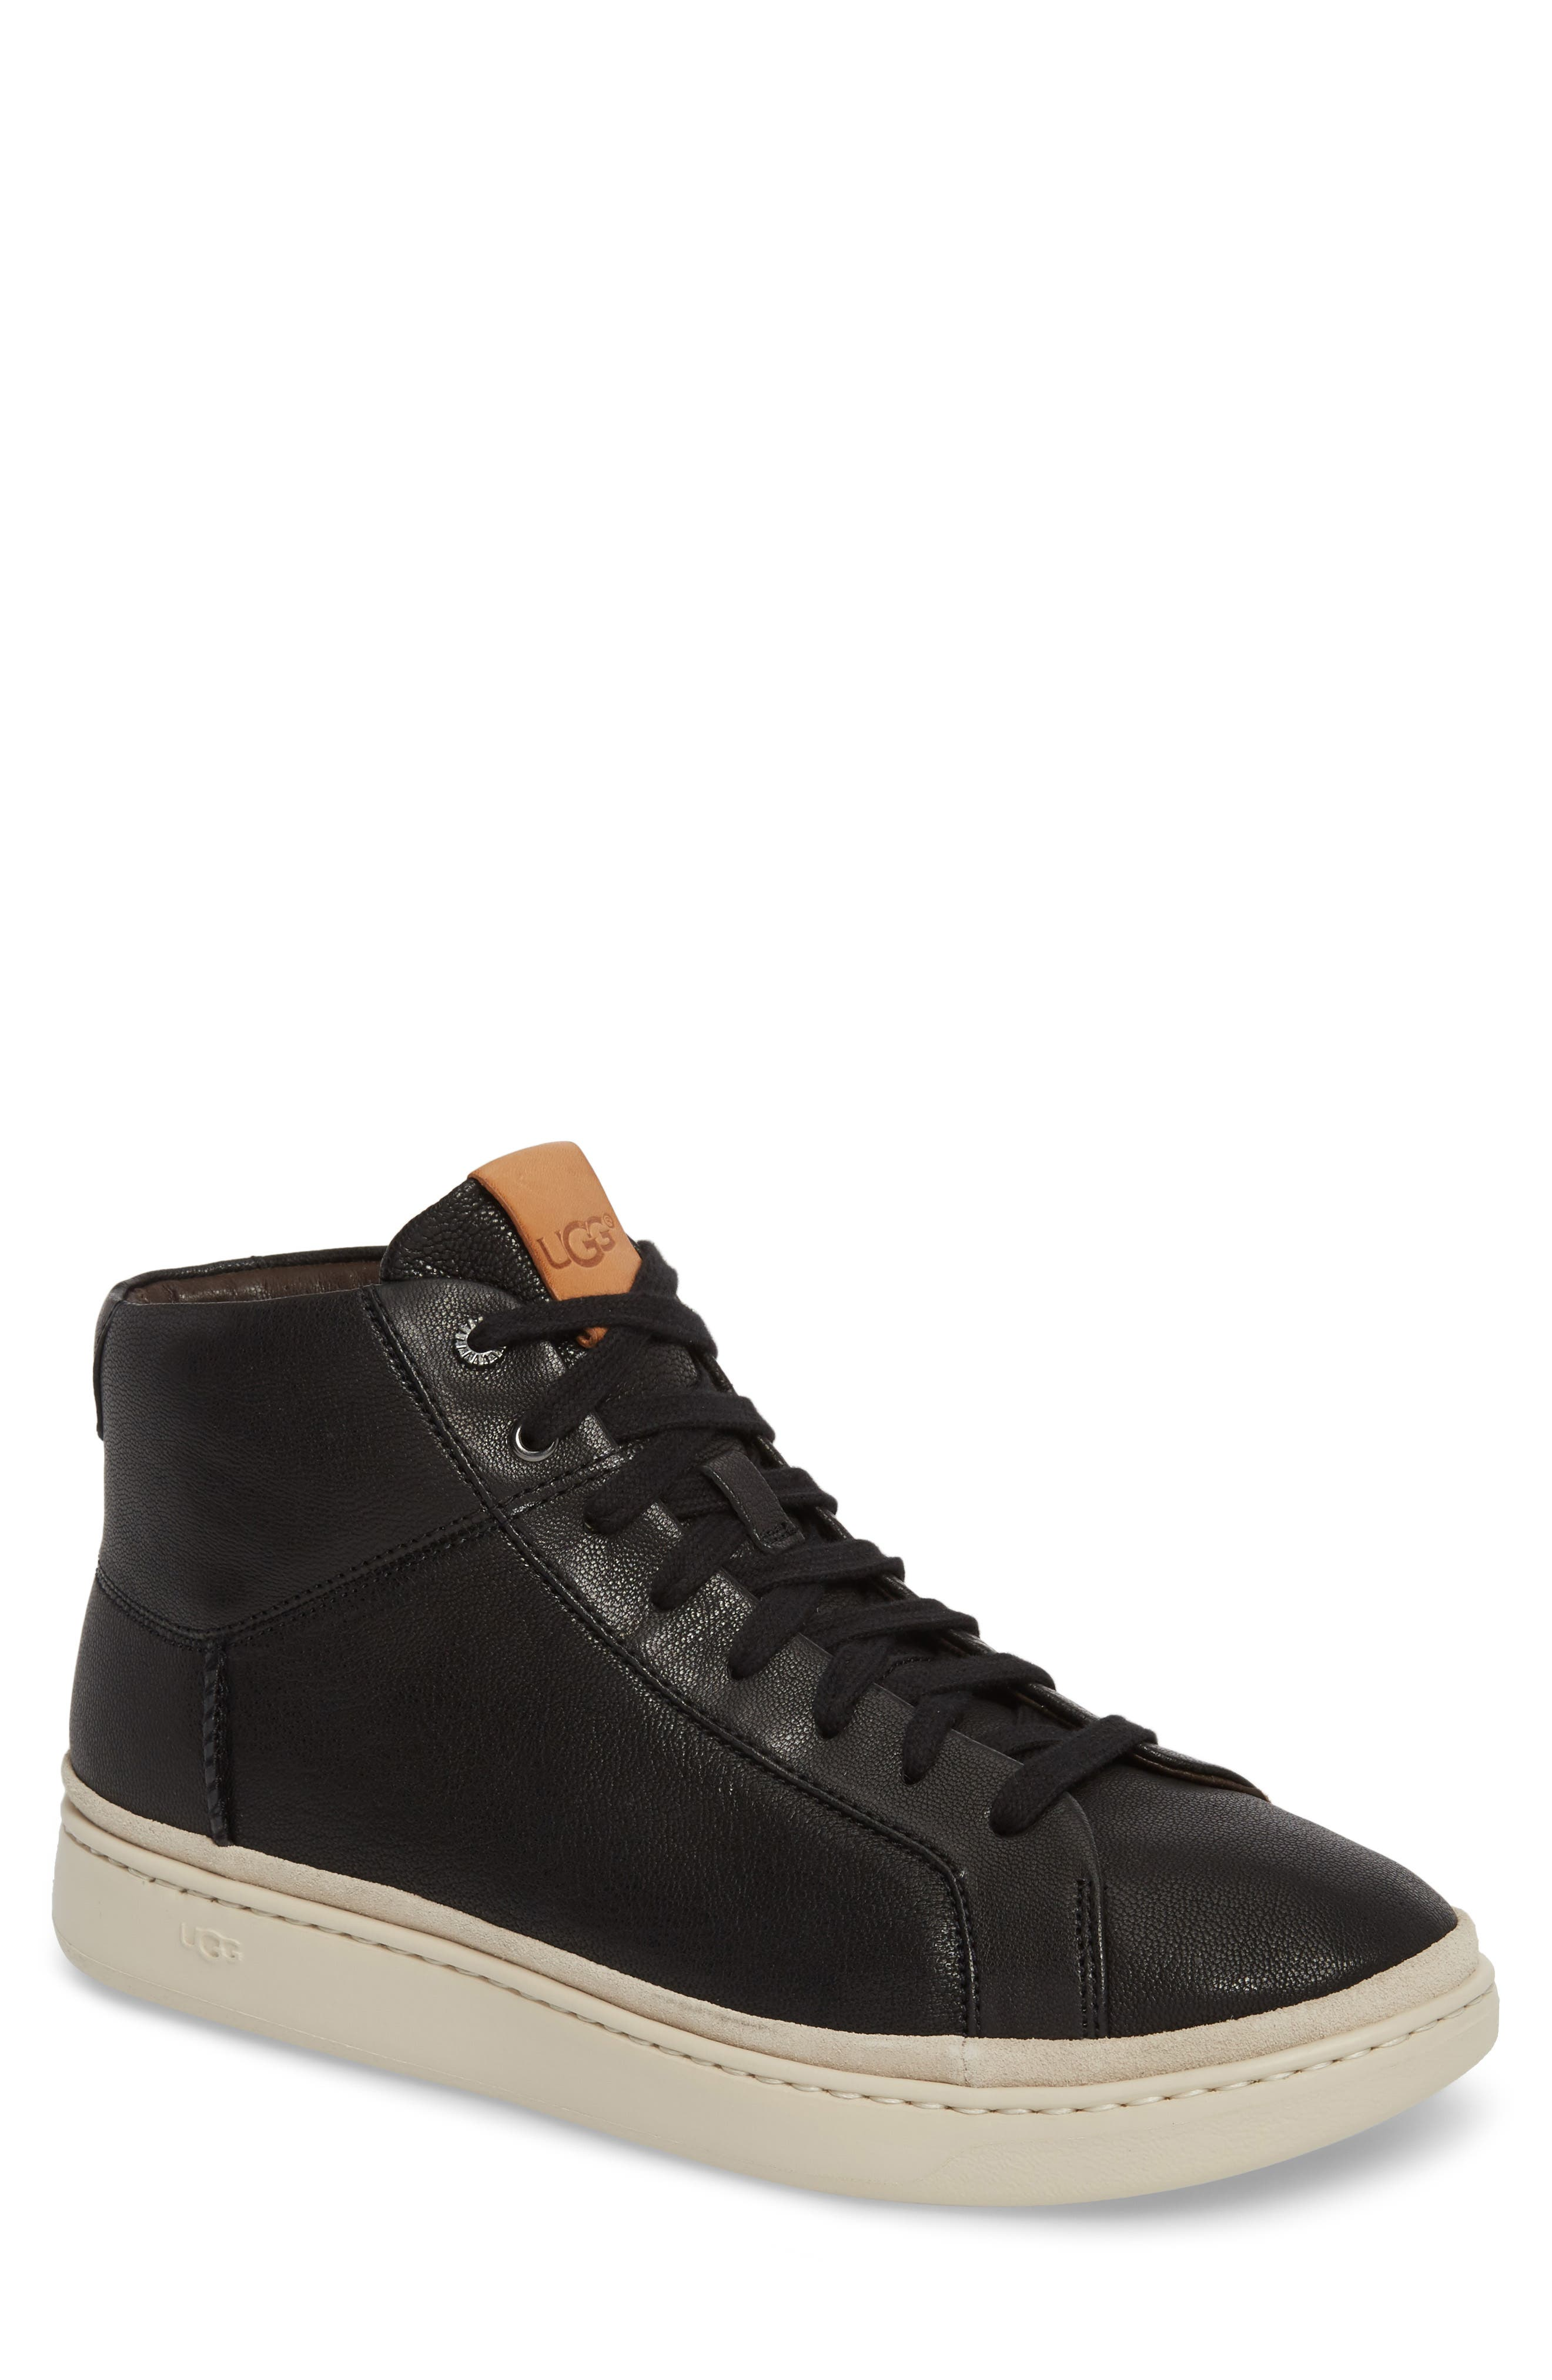 UGG<SUP>®</SUP>, Cali High Top Sneaker, Main thumbnail 1, color, BLACK LEATHER